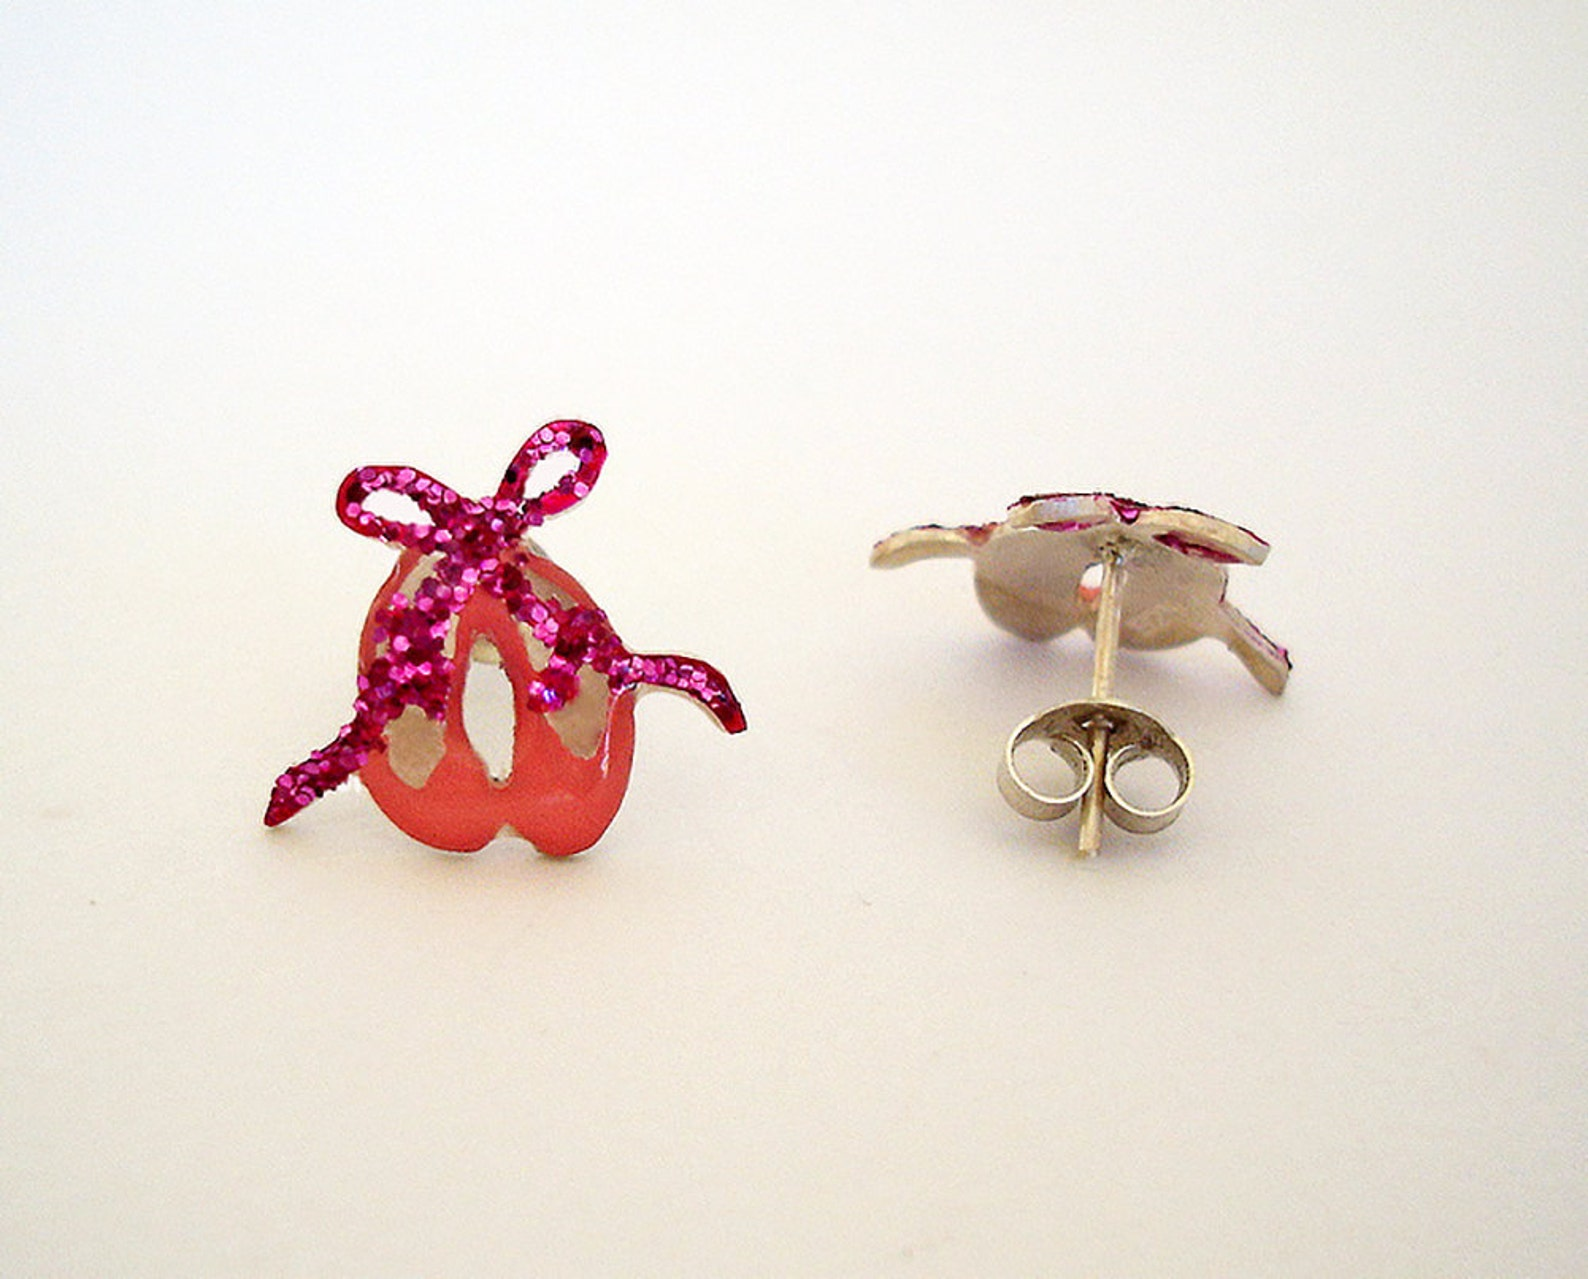 ballerina earrings - ballet shoes earrings - ballerina jewelry - enamel earrings studs - ballerina gift - girls sterling silver